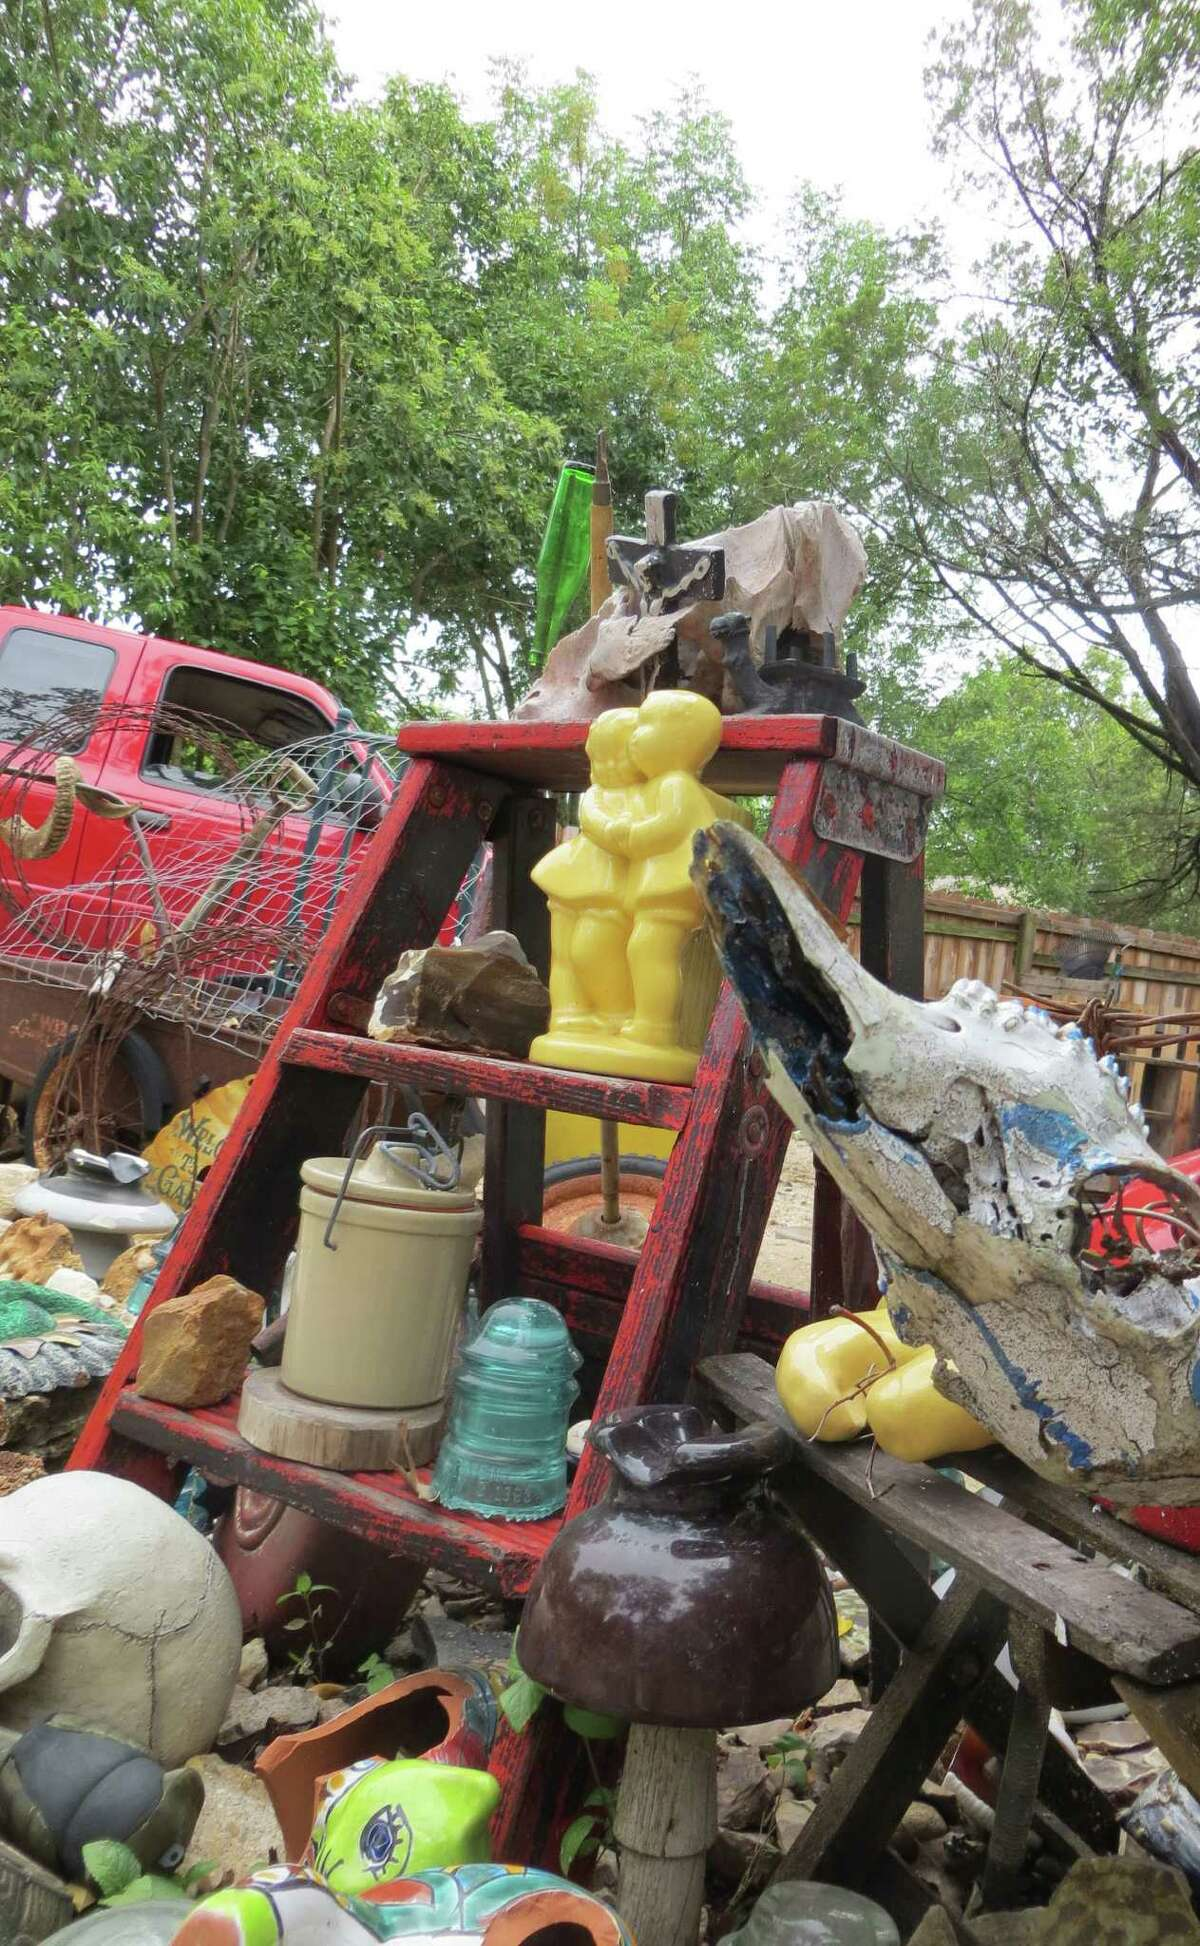 Everything from old furniture to toys and shards of ceramic pottery and old glass insulators can be found on display in front of Renee Lofaso Massey's Alice Street home in Kerrville, much to the dismay of the city